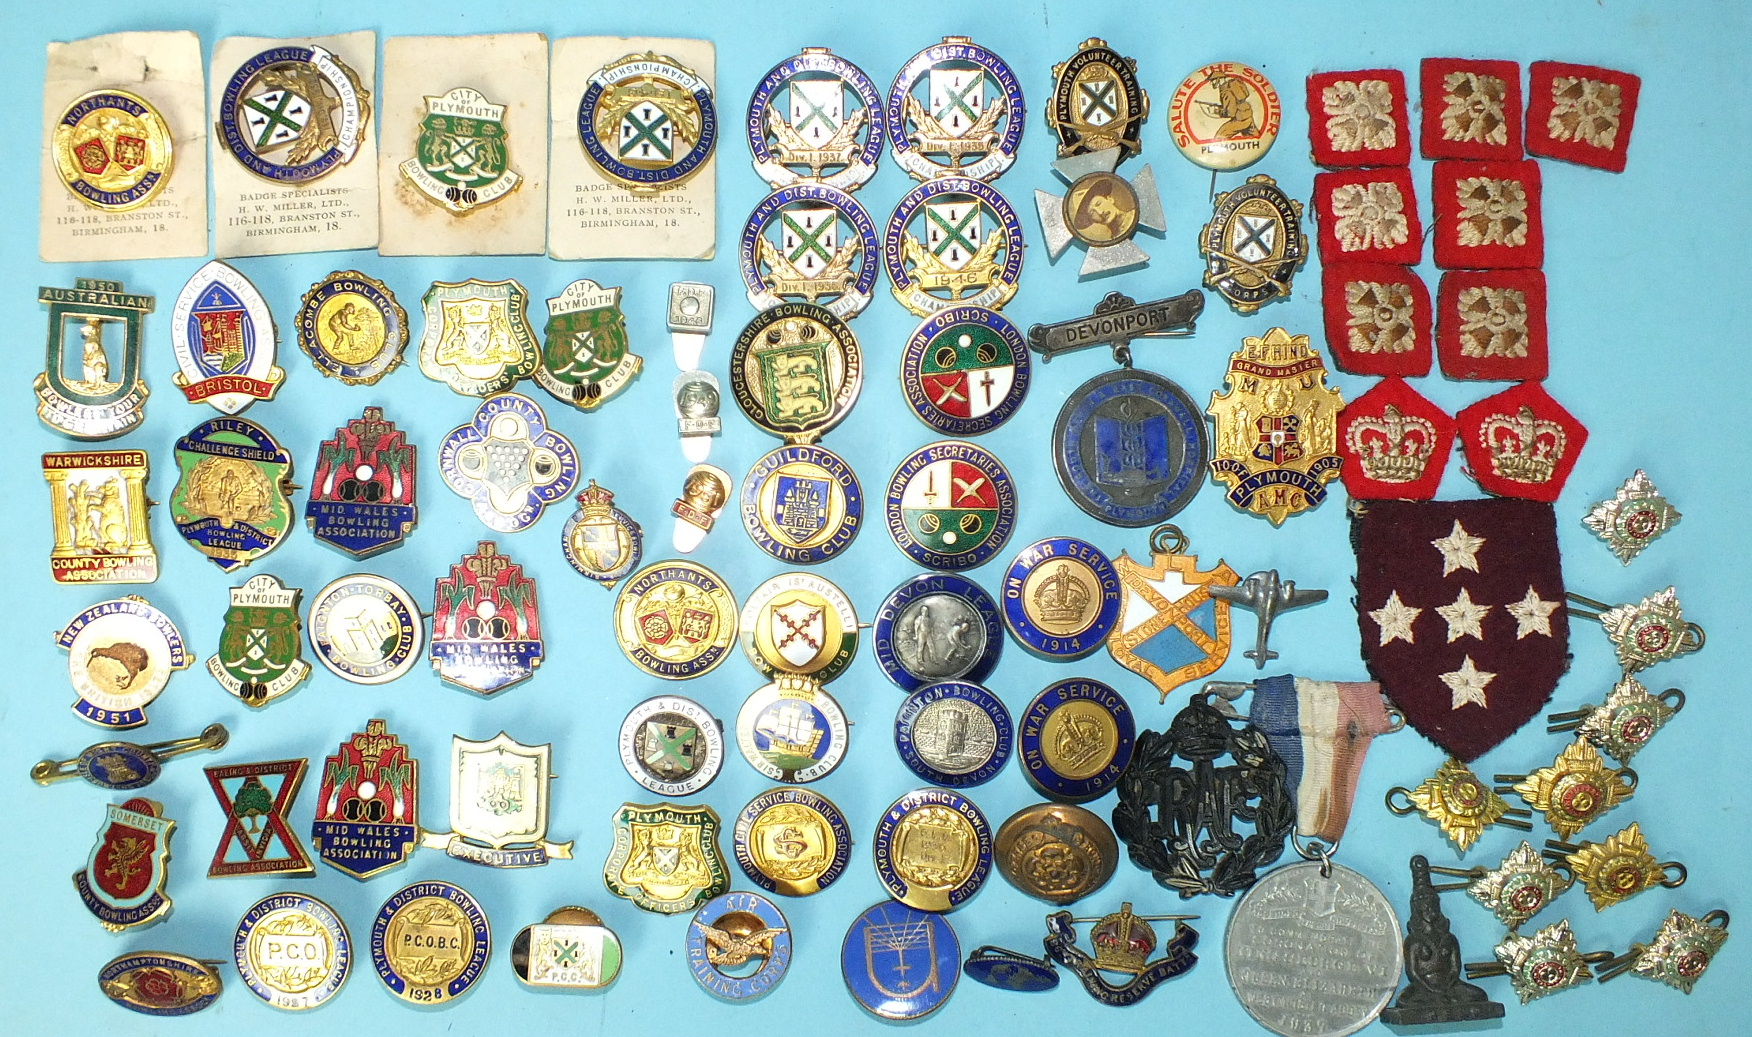 Lot 583 - Various enamelled badges, including 47 bowling badges, and other items.